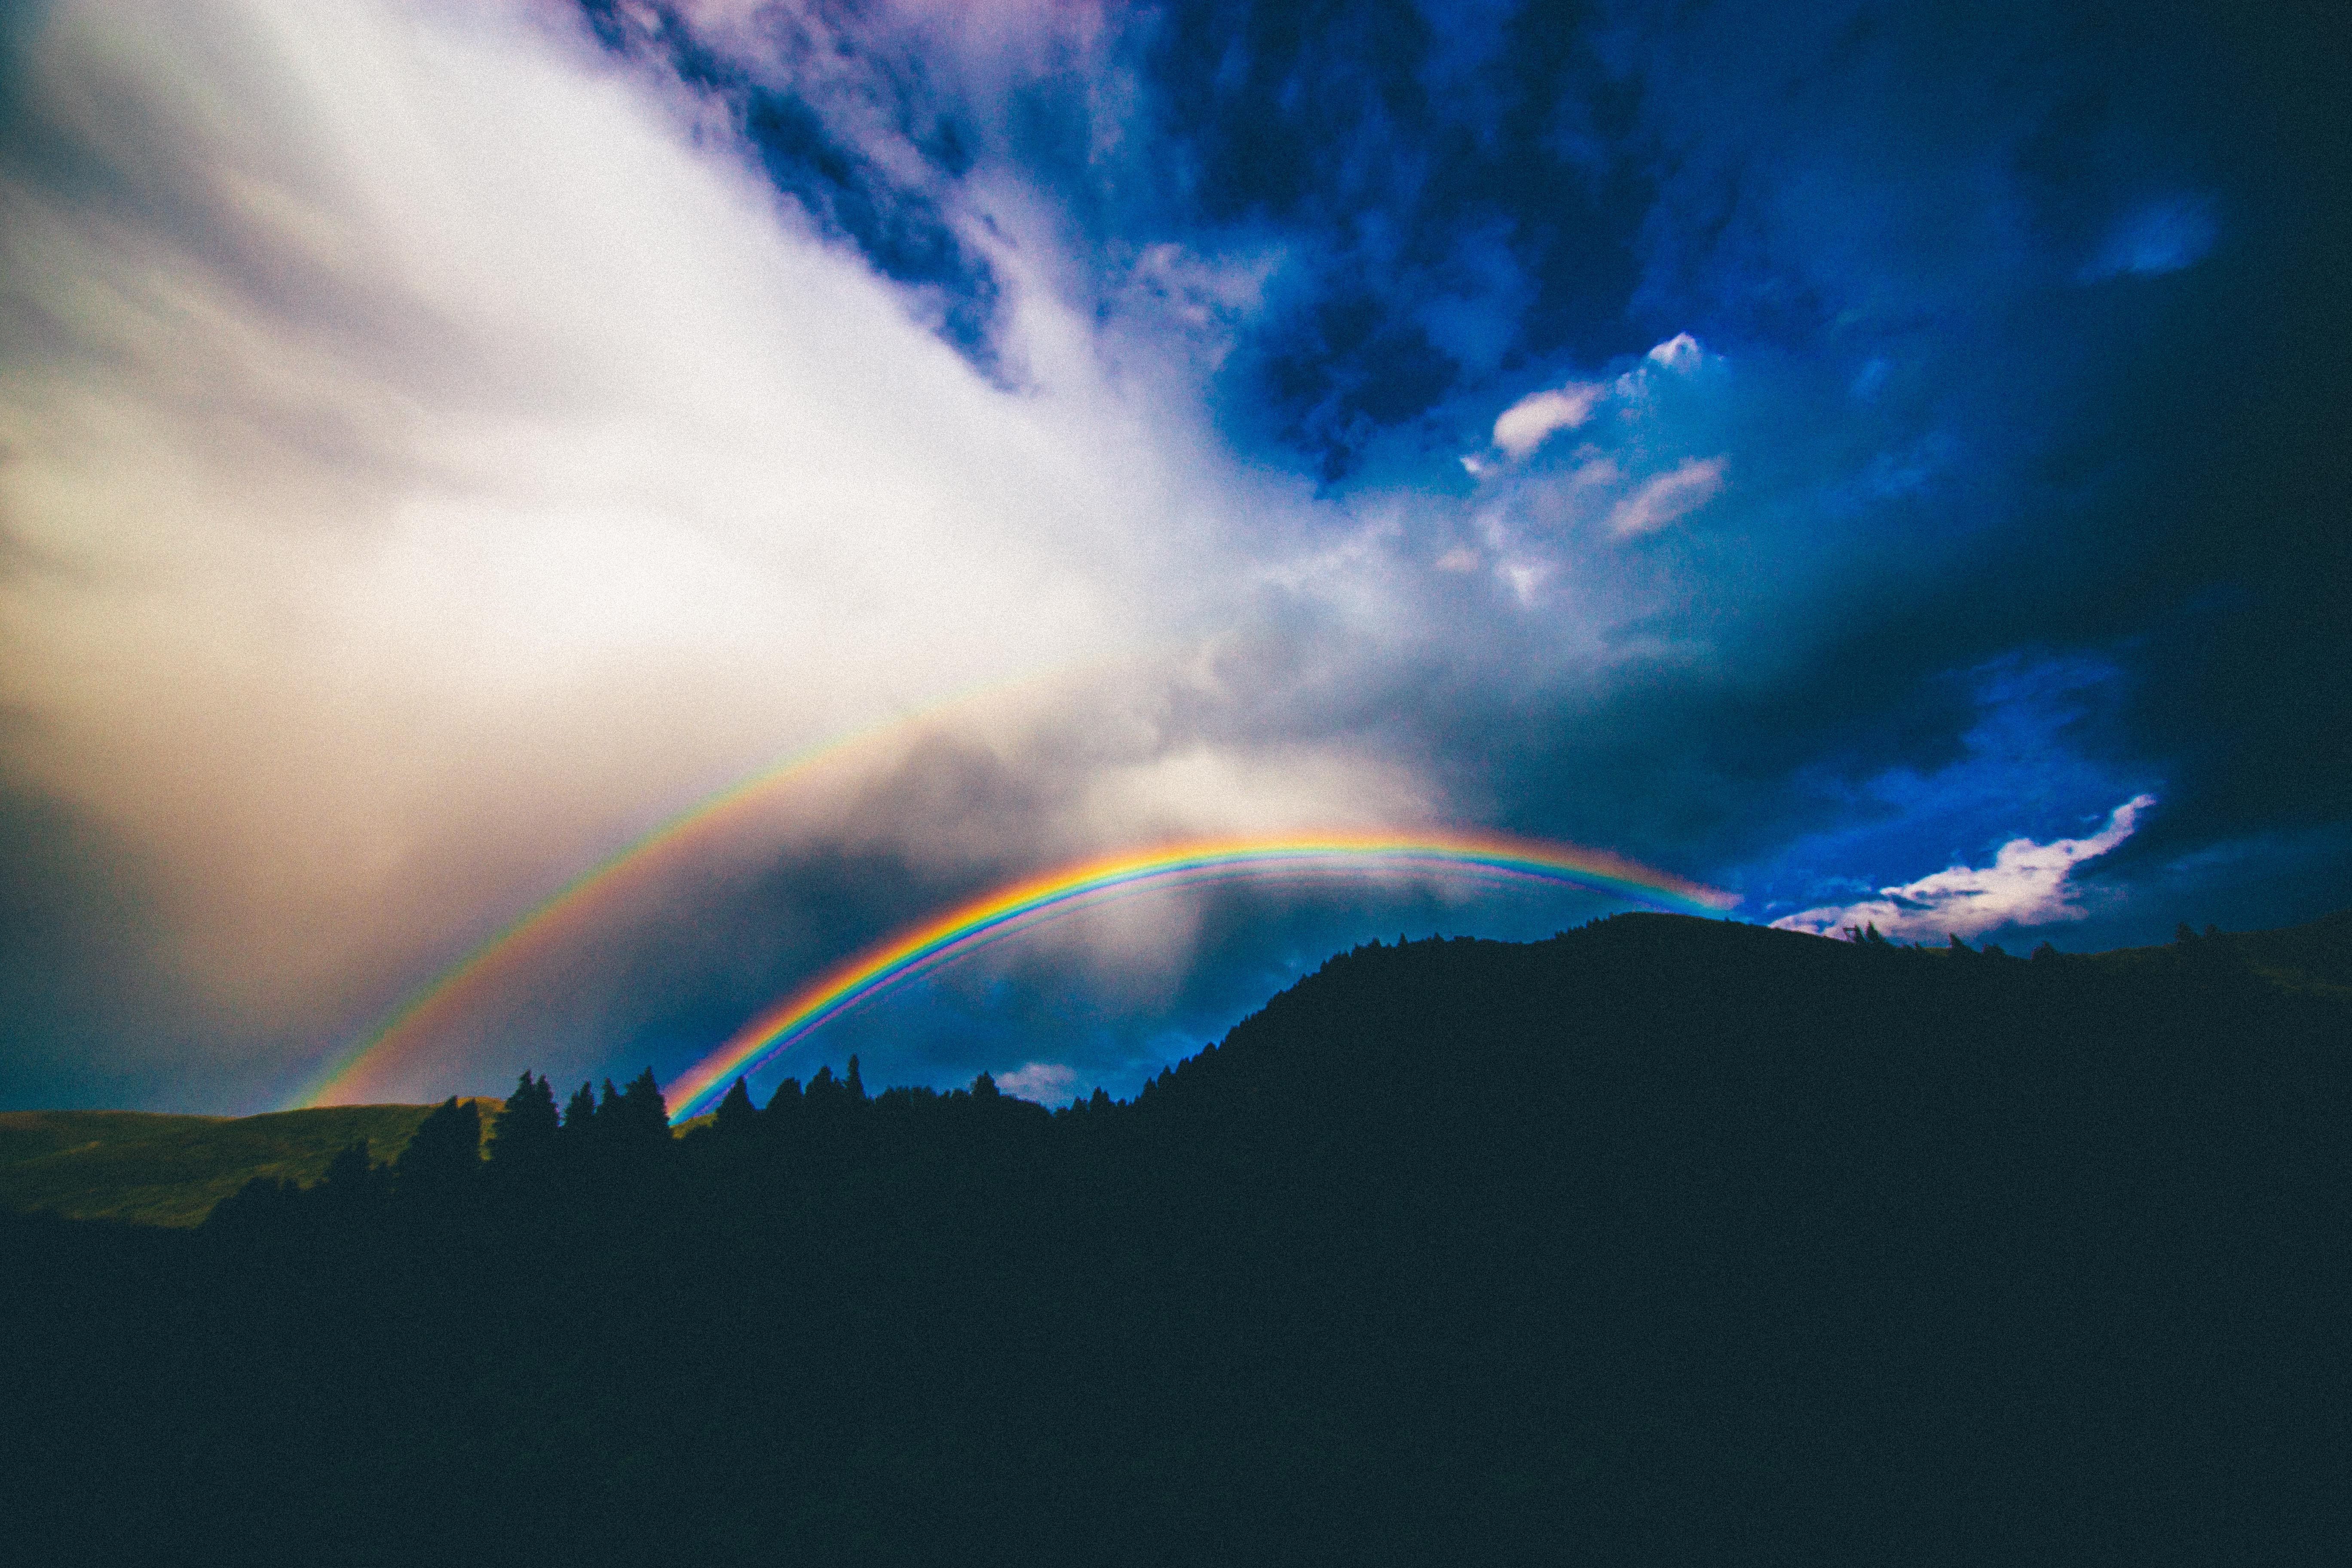 A mountain silhouette with a double rainbow in the blue sky in Provo